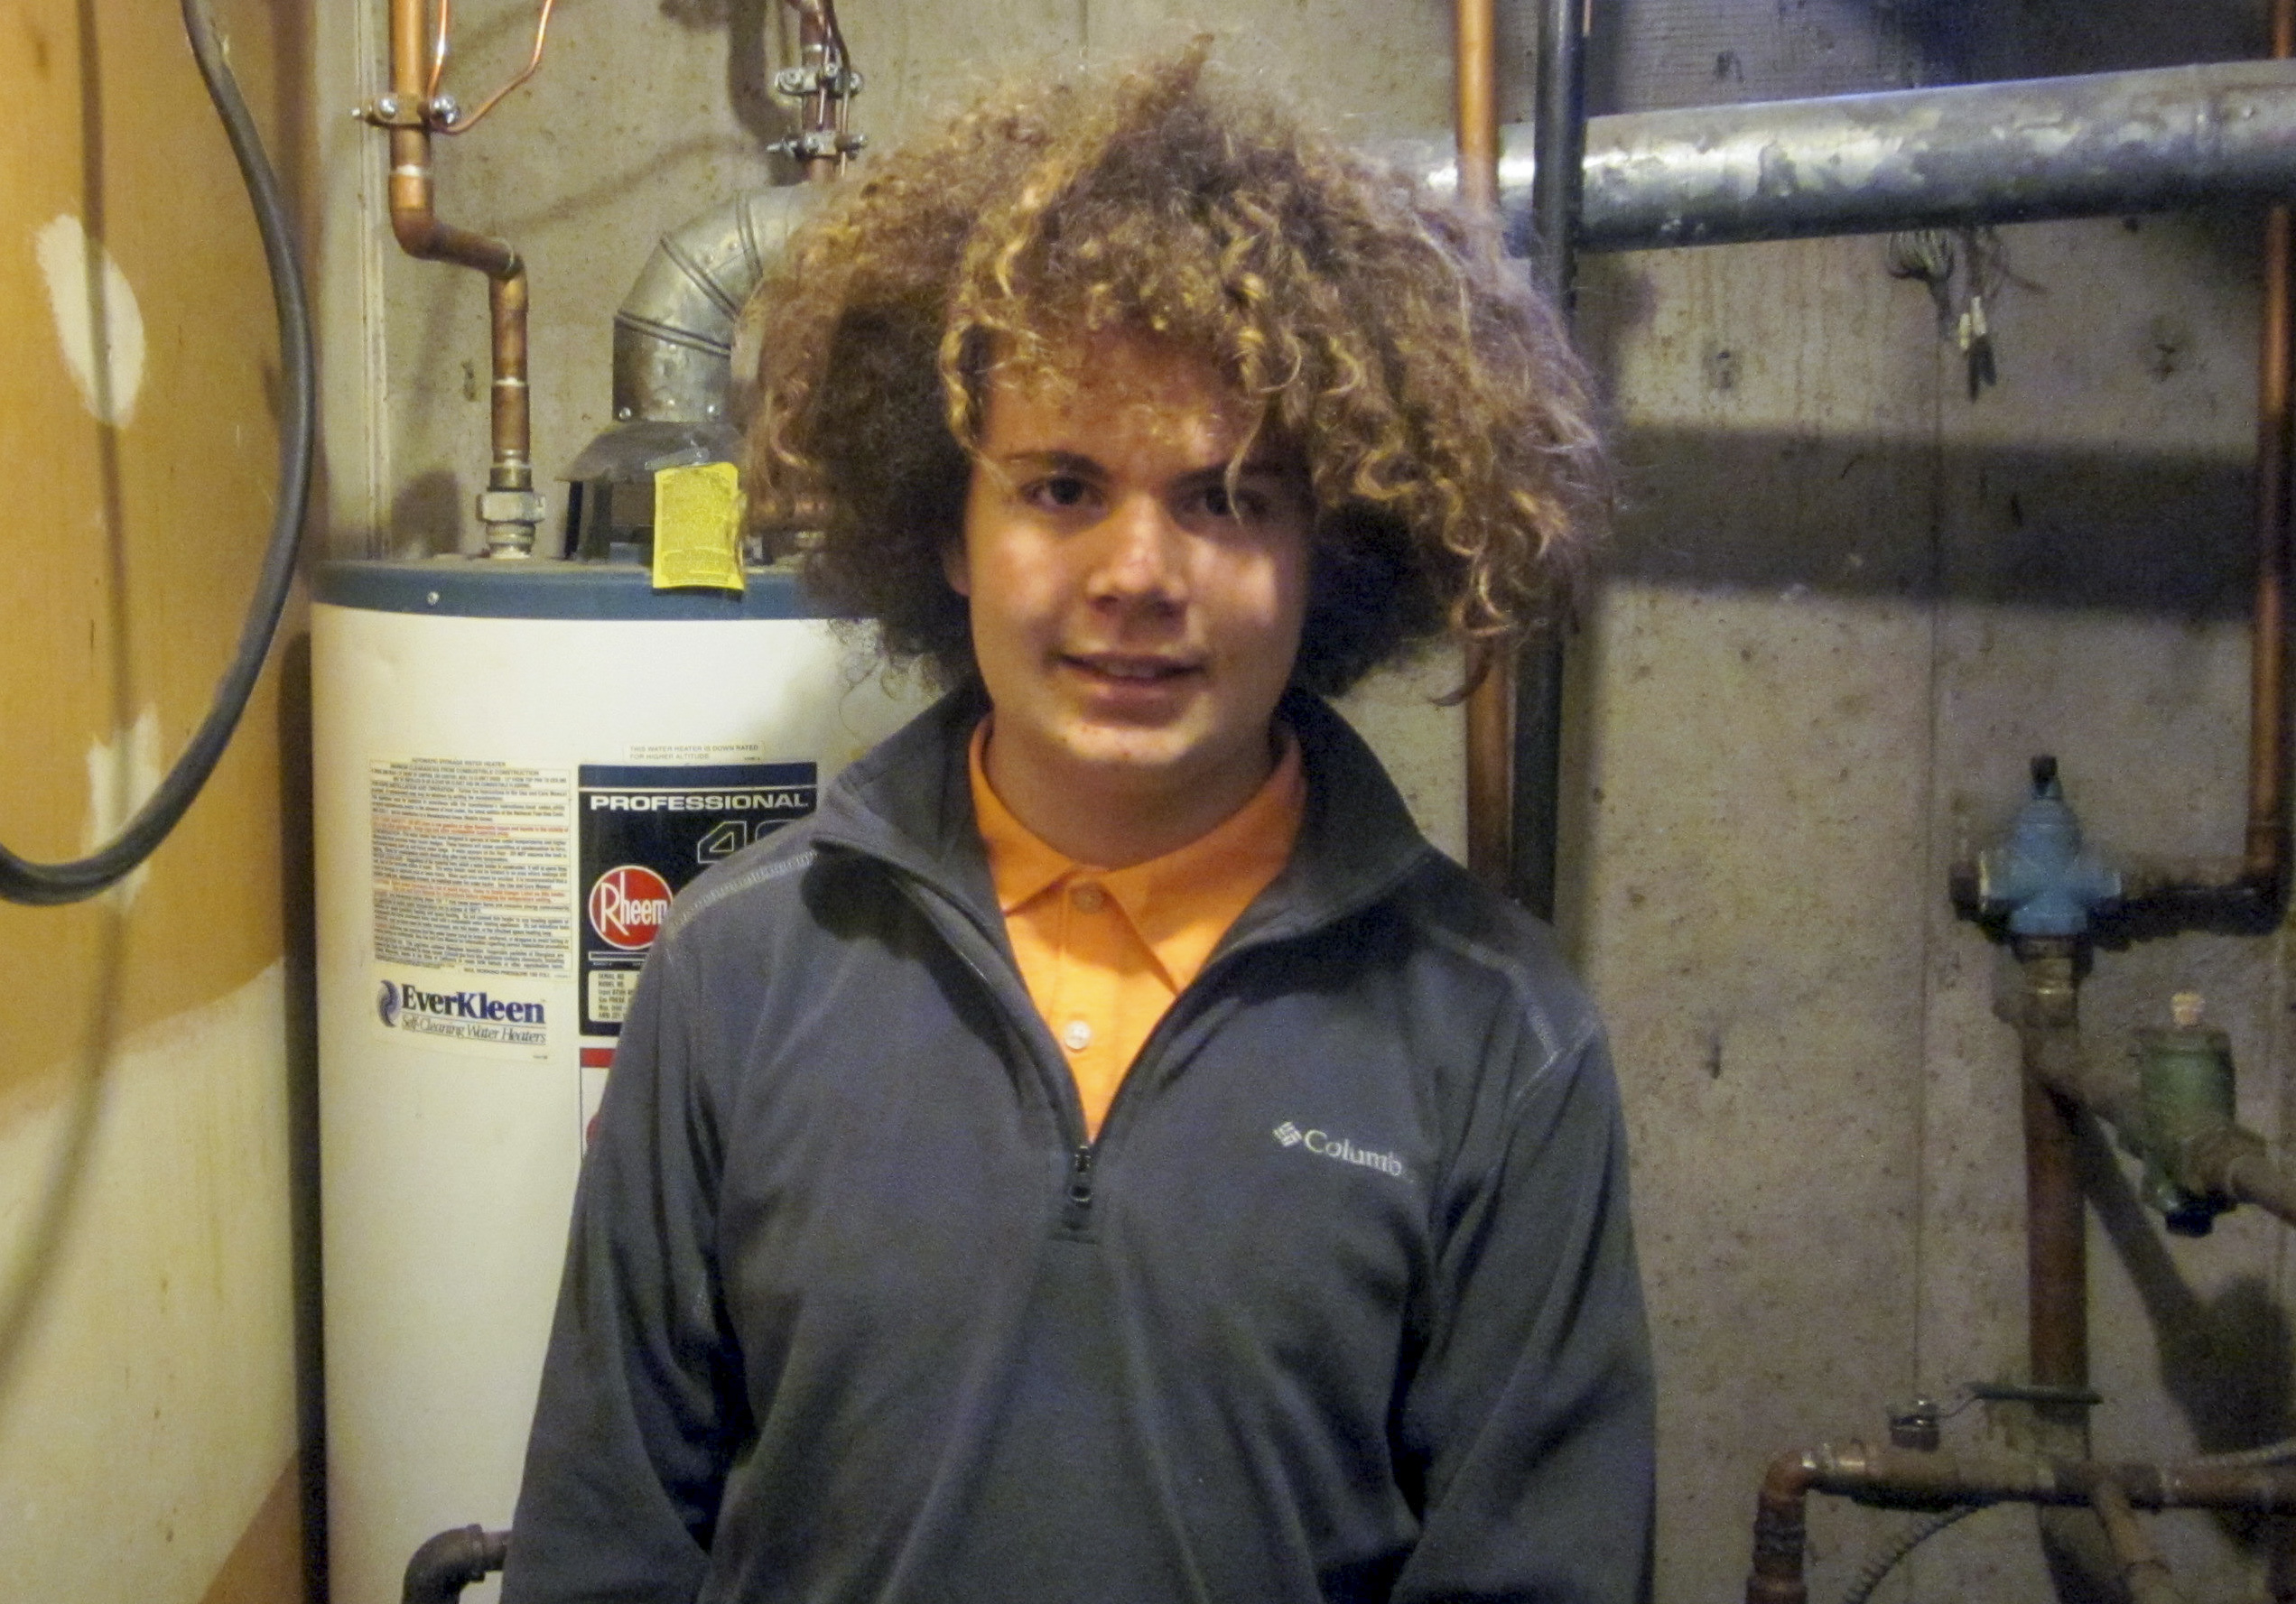 Photo: Mackintosh Academy 4 | Student near water heater